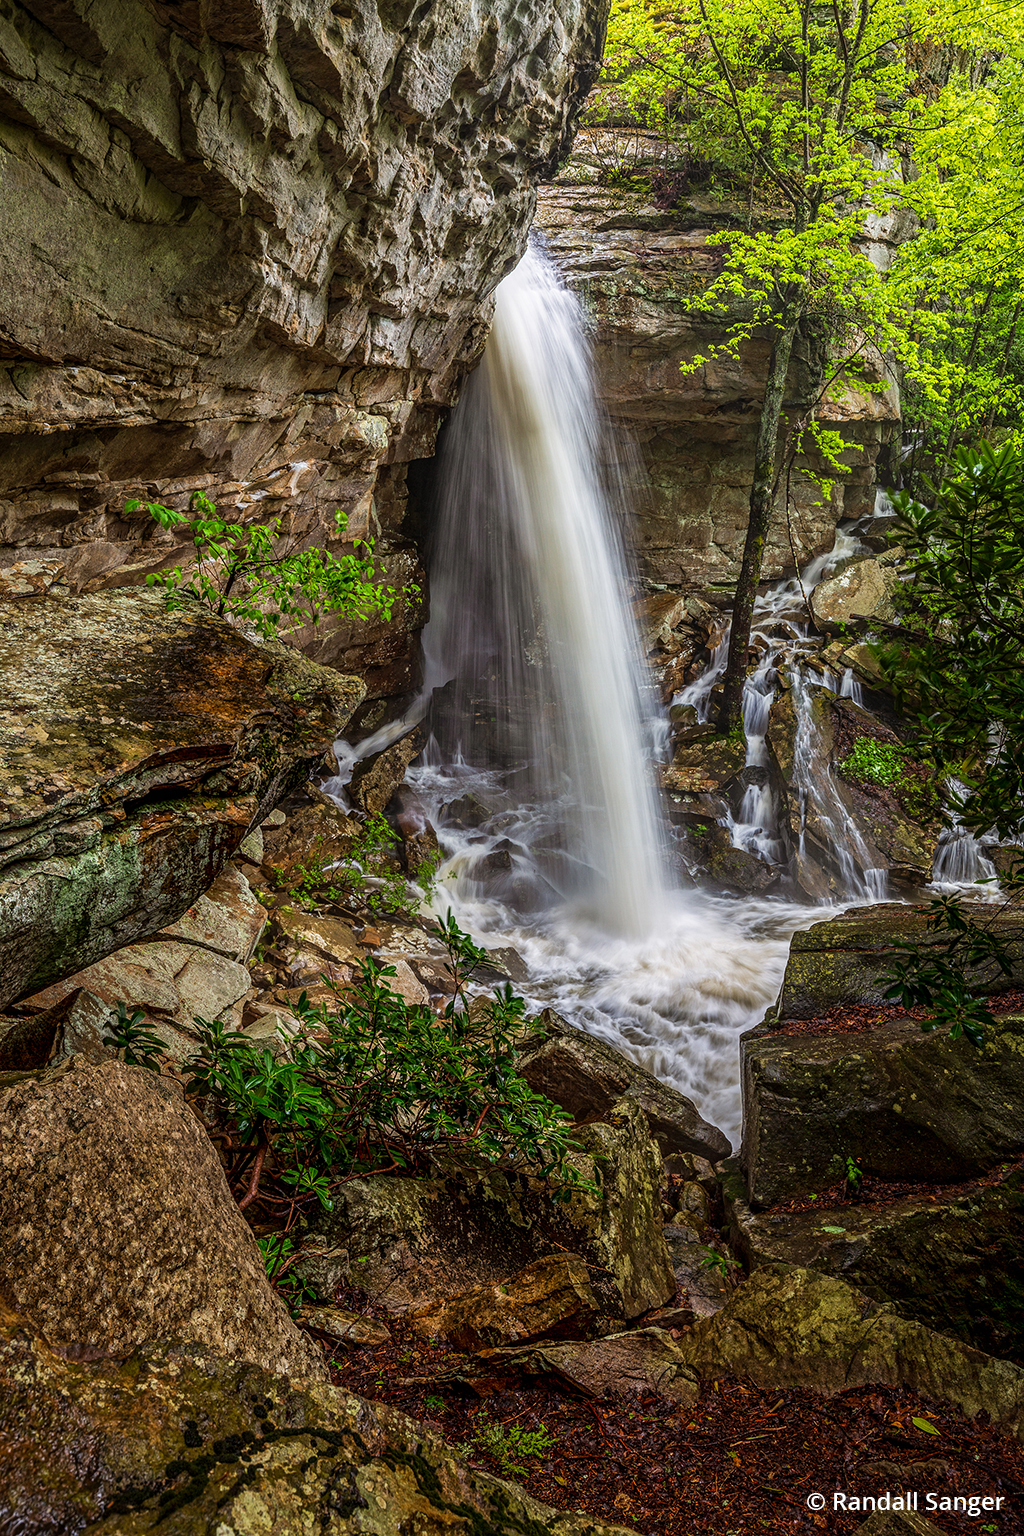 Image of Upper Fern Creek Falls in New River Gorge